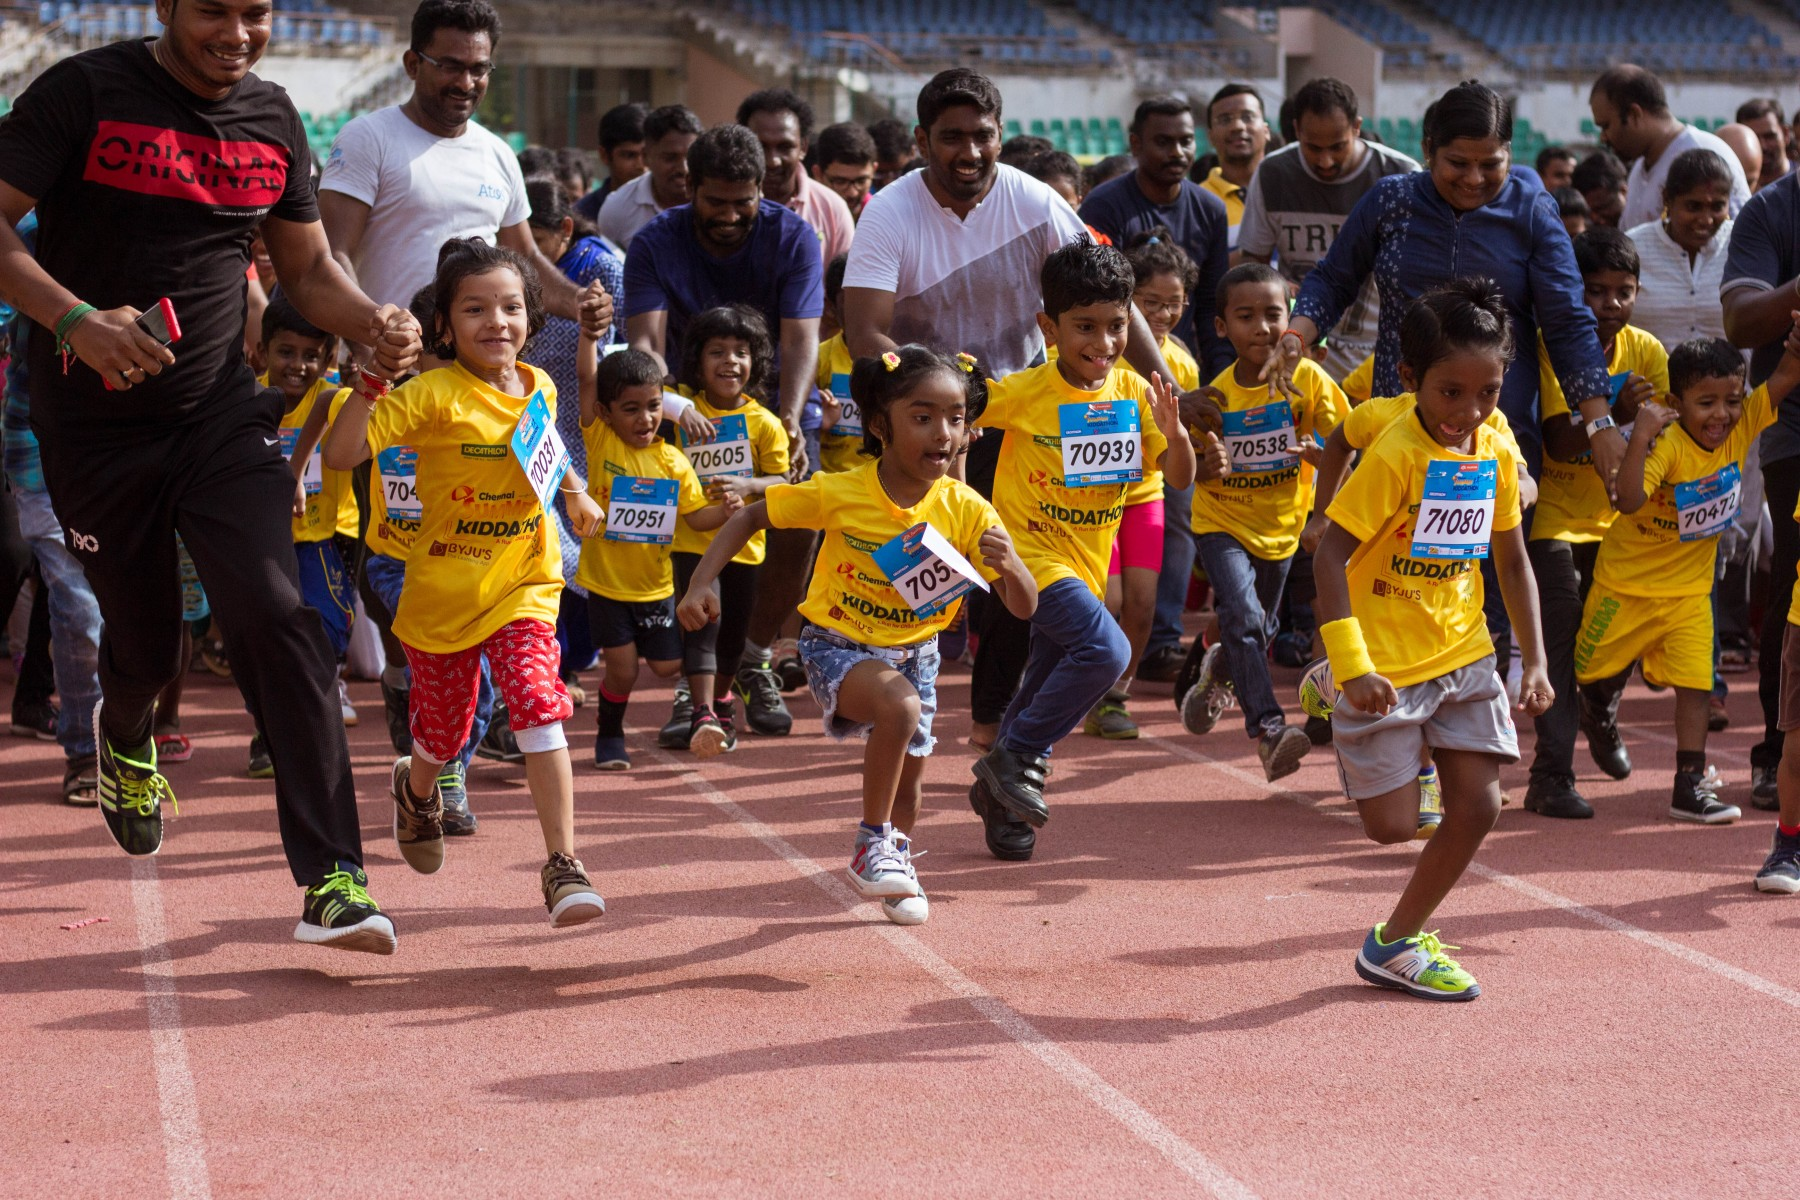 2018.05 Nearly 2000 children raced in the Chennai Summer Kiddathon